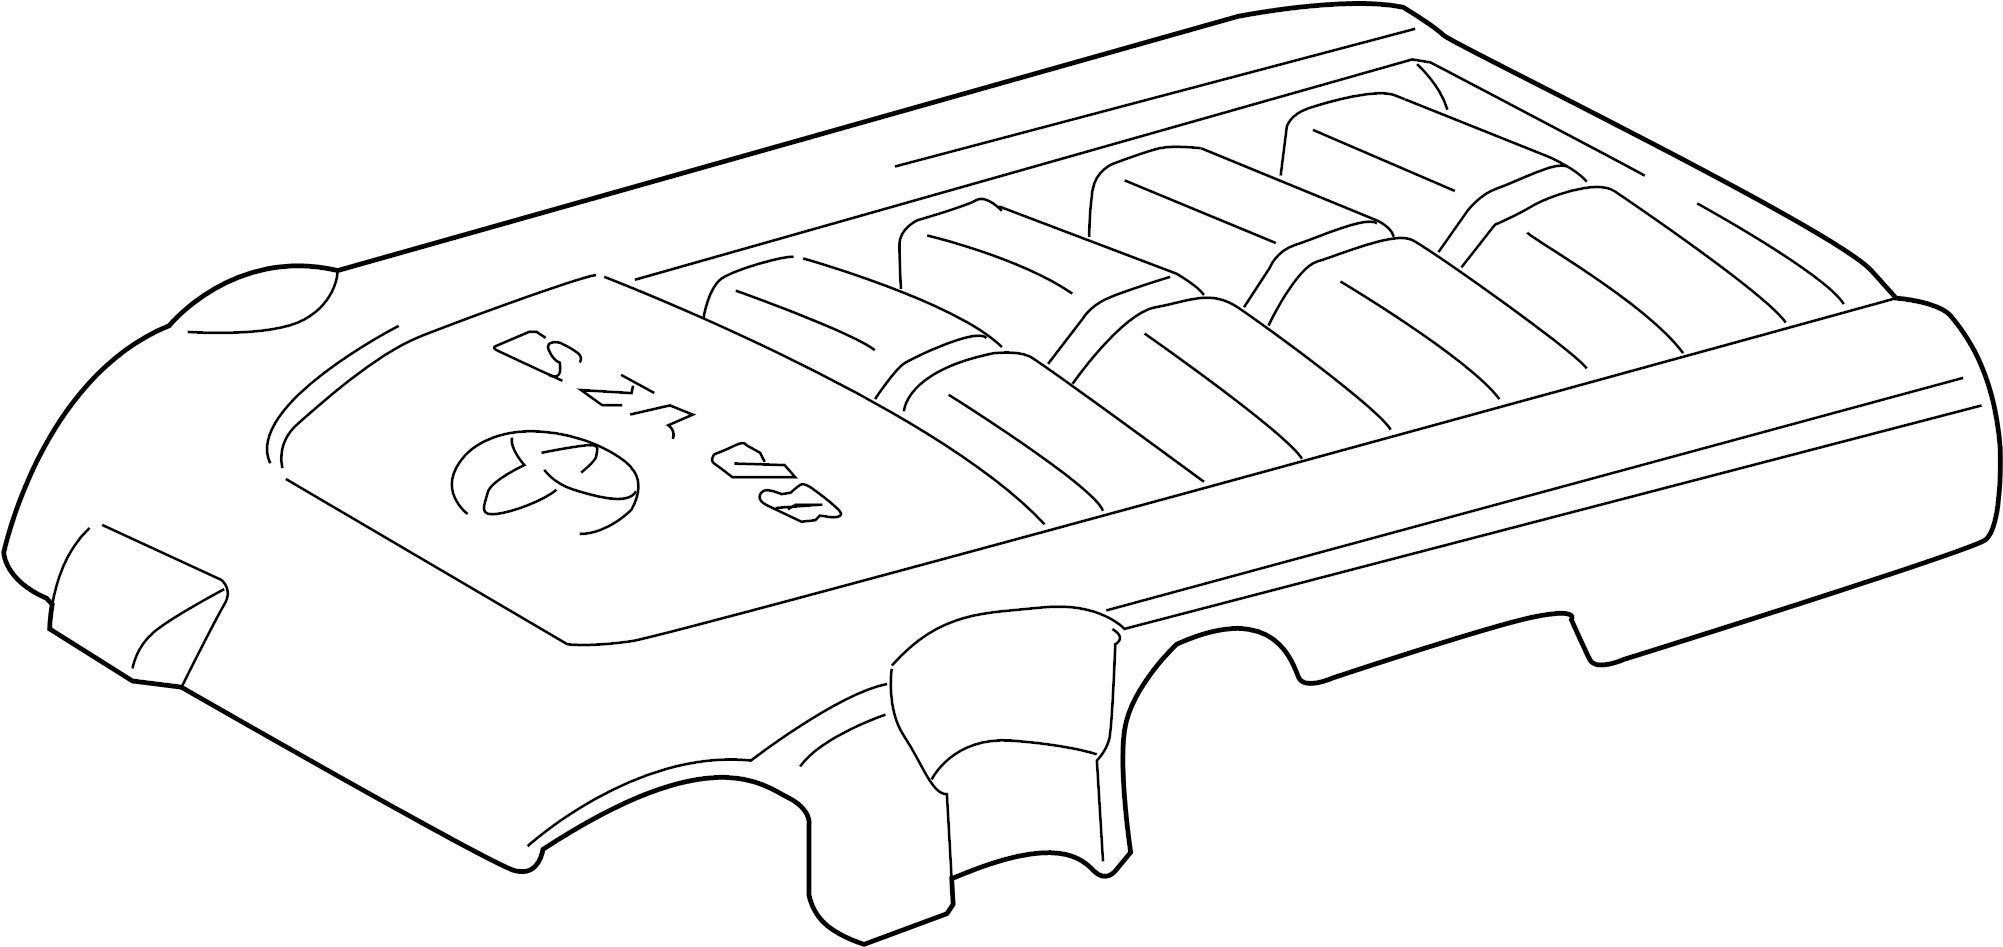 Toyota Tundra 4 7 Engine Diagram